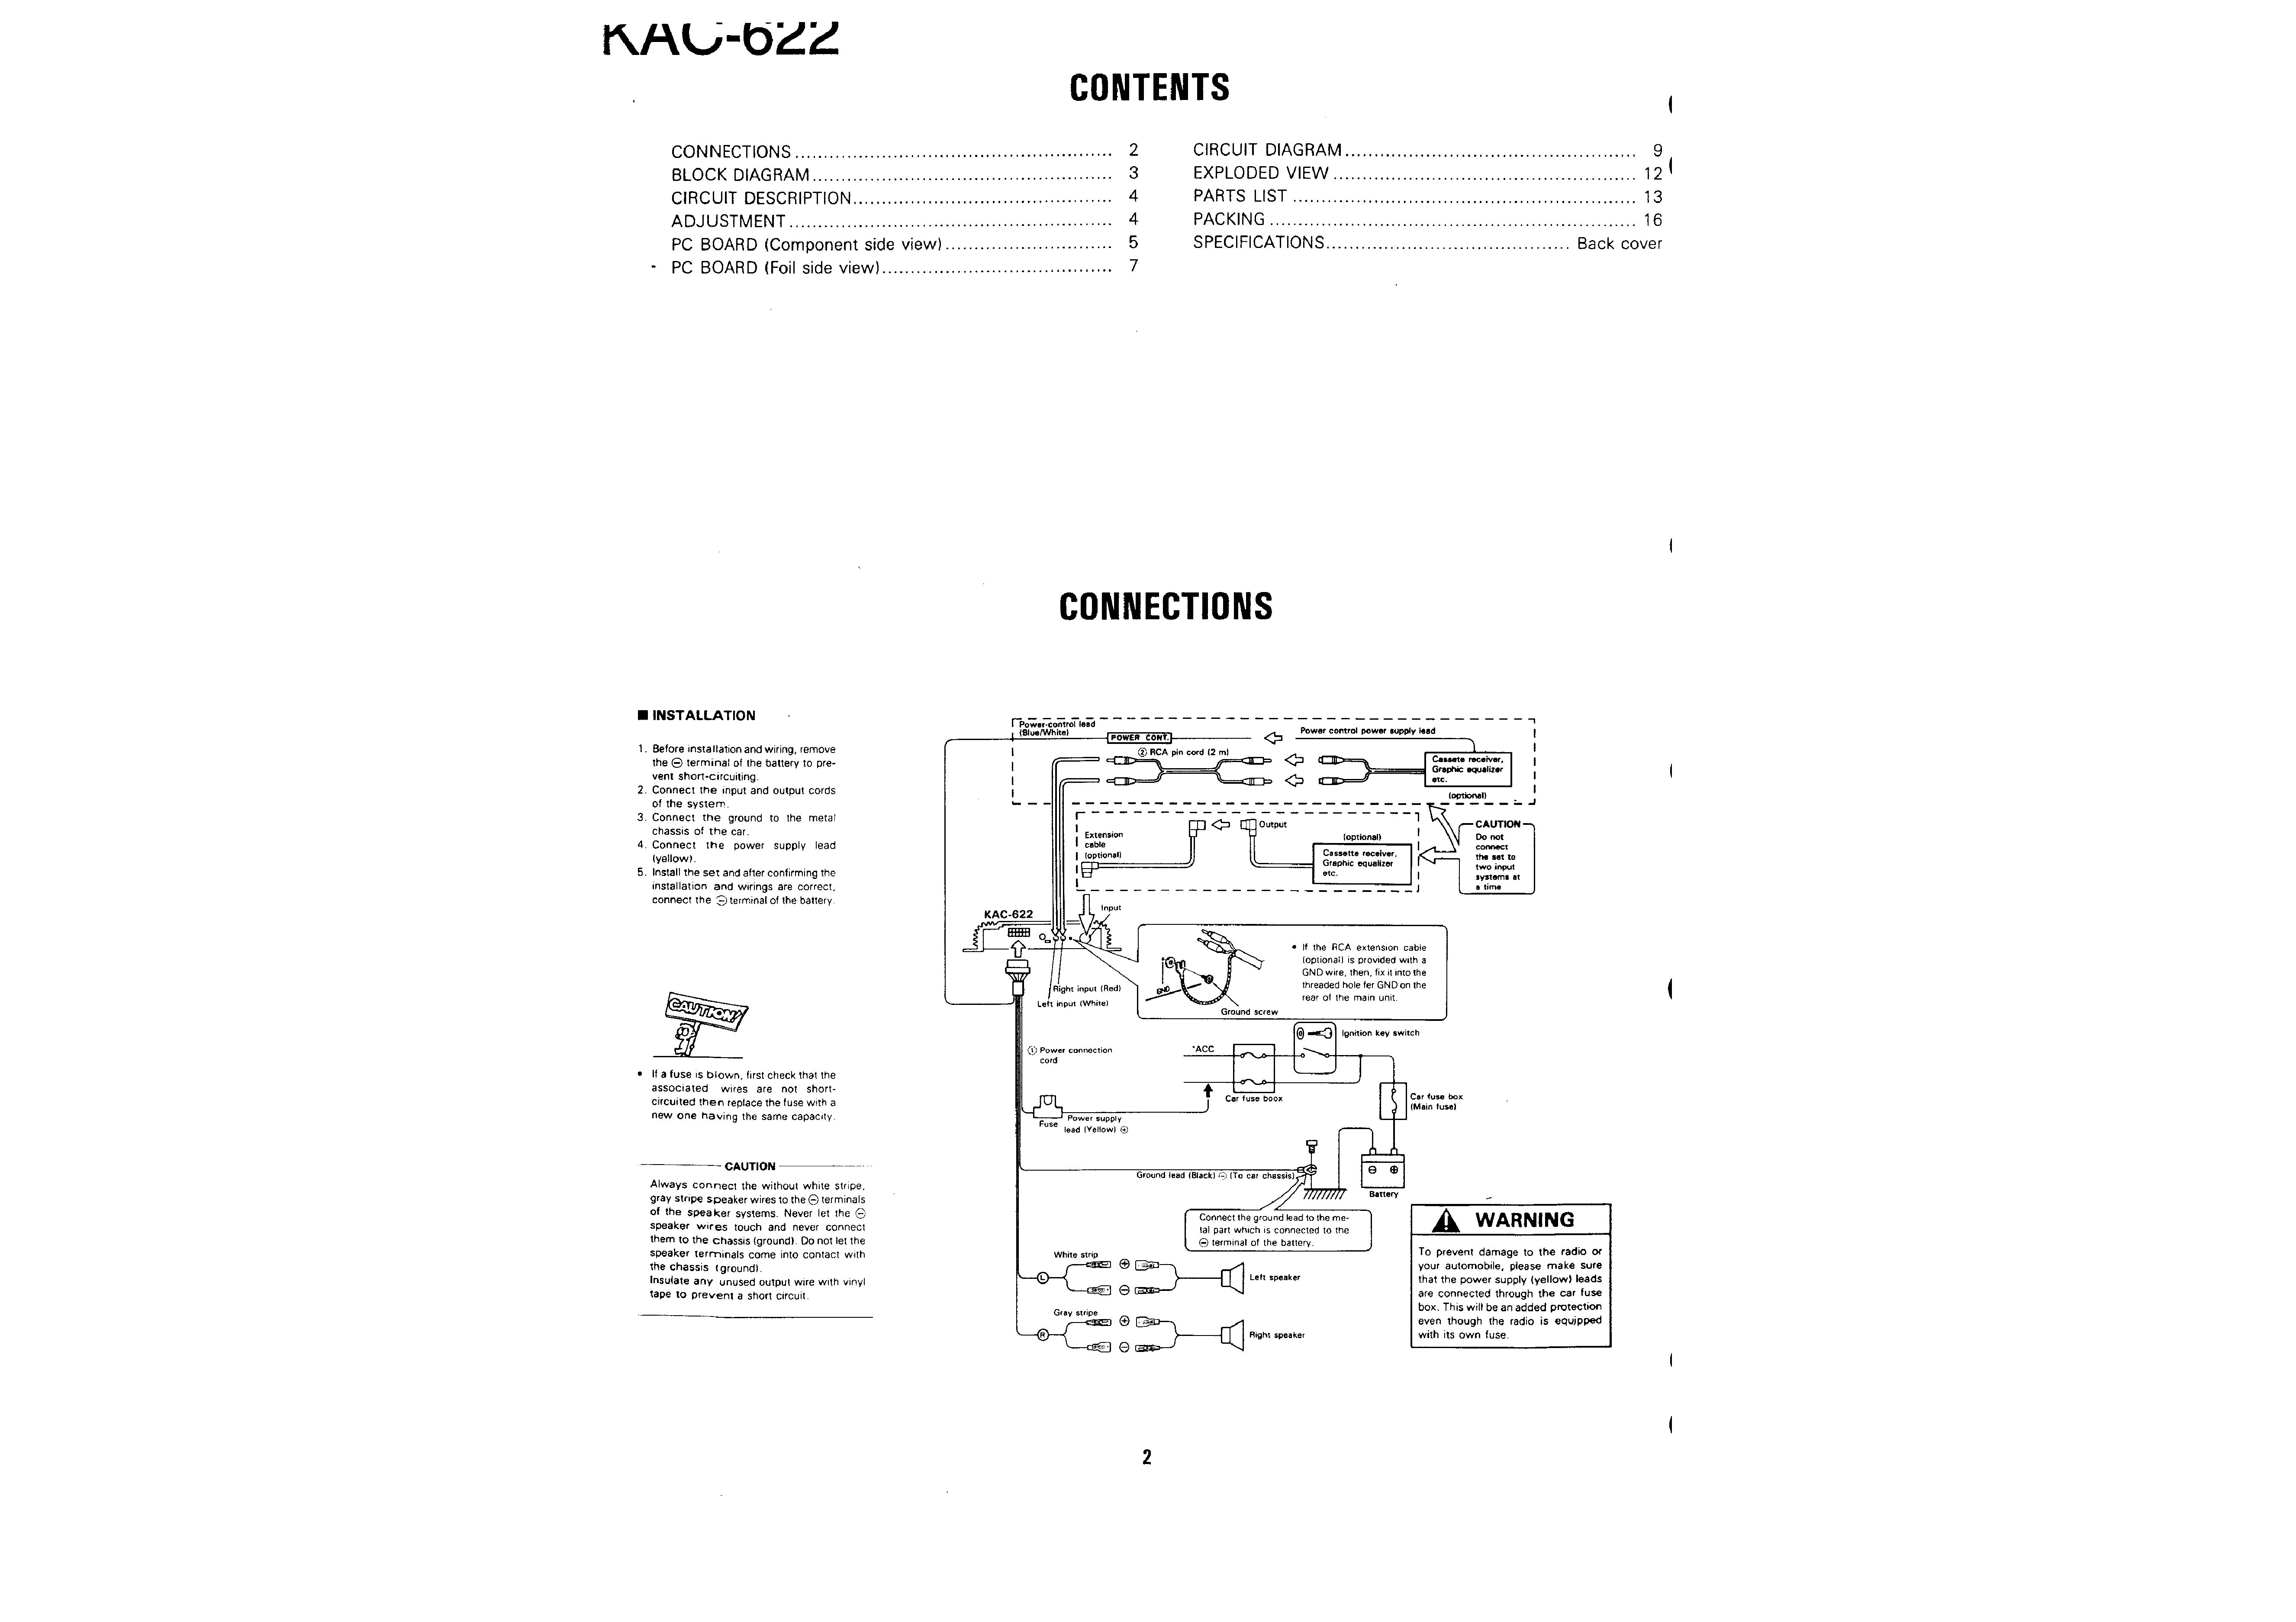 Kenwood Car Stereo Wiring Diagrams Kdc X591 Quick Start Guide Of Model X759 Diagram Kac 622 Harness 30 Images Mifinder Co